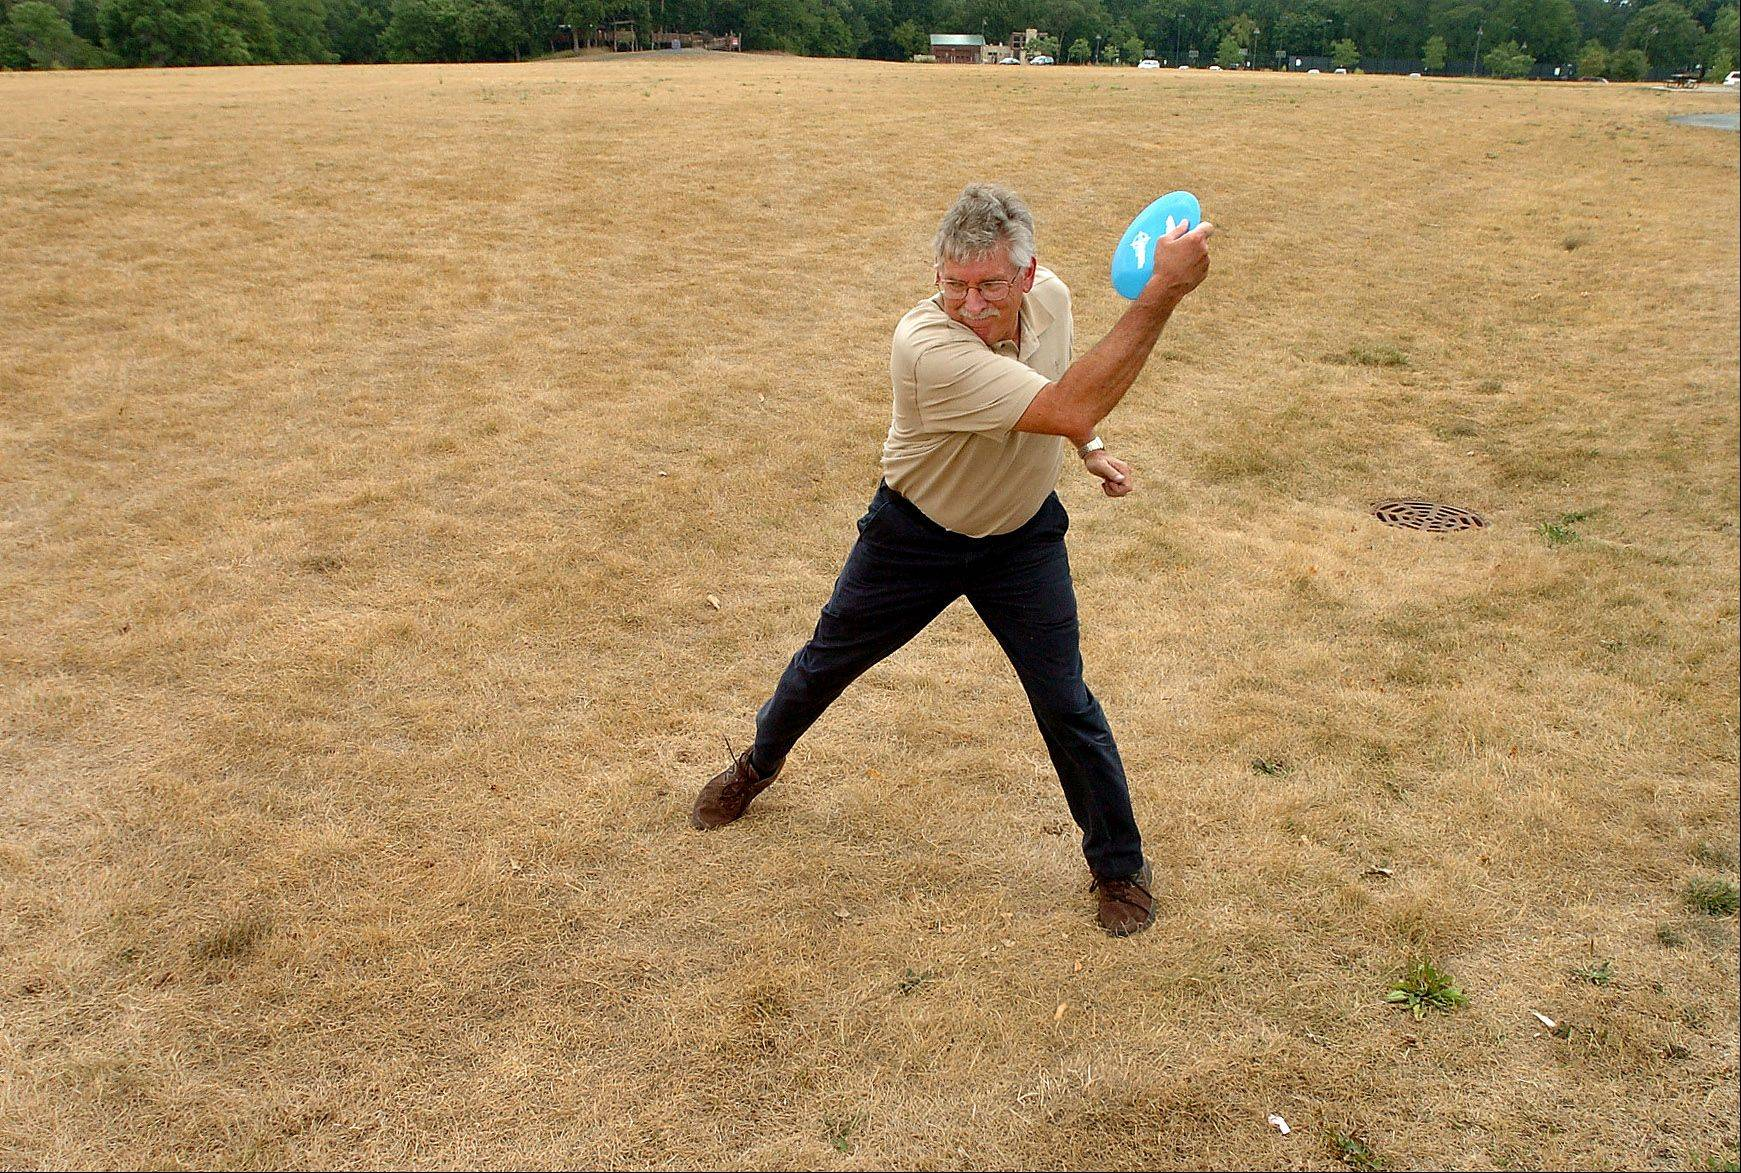 Tom McManus lets fly with a disc while practicing his disc golf skills at a parched Citizens Park in Barrington.